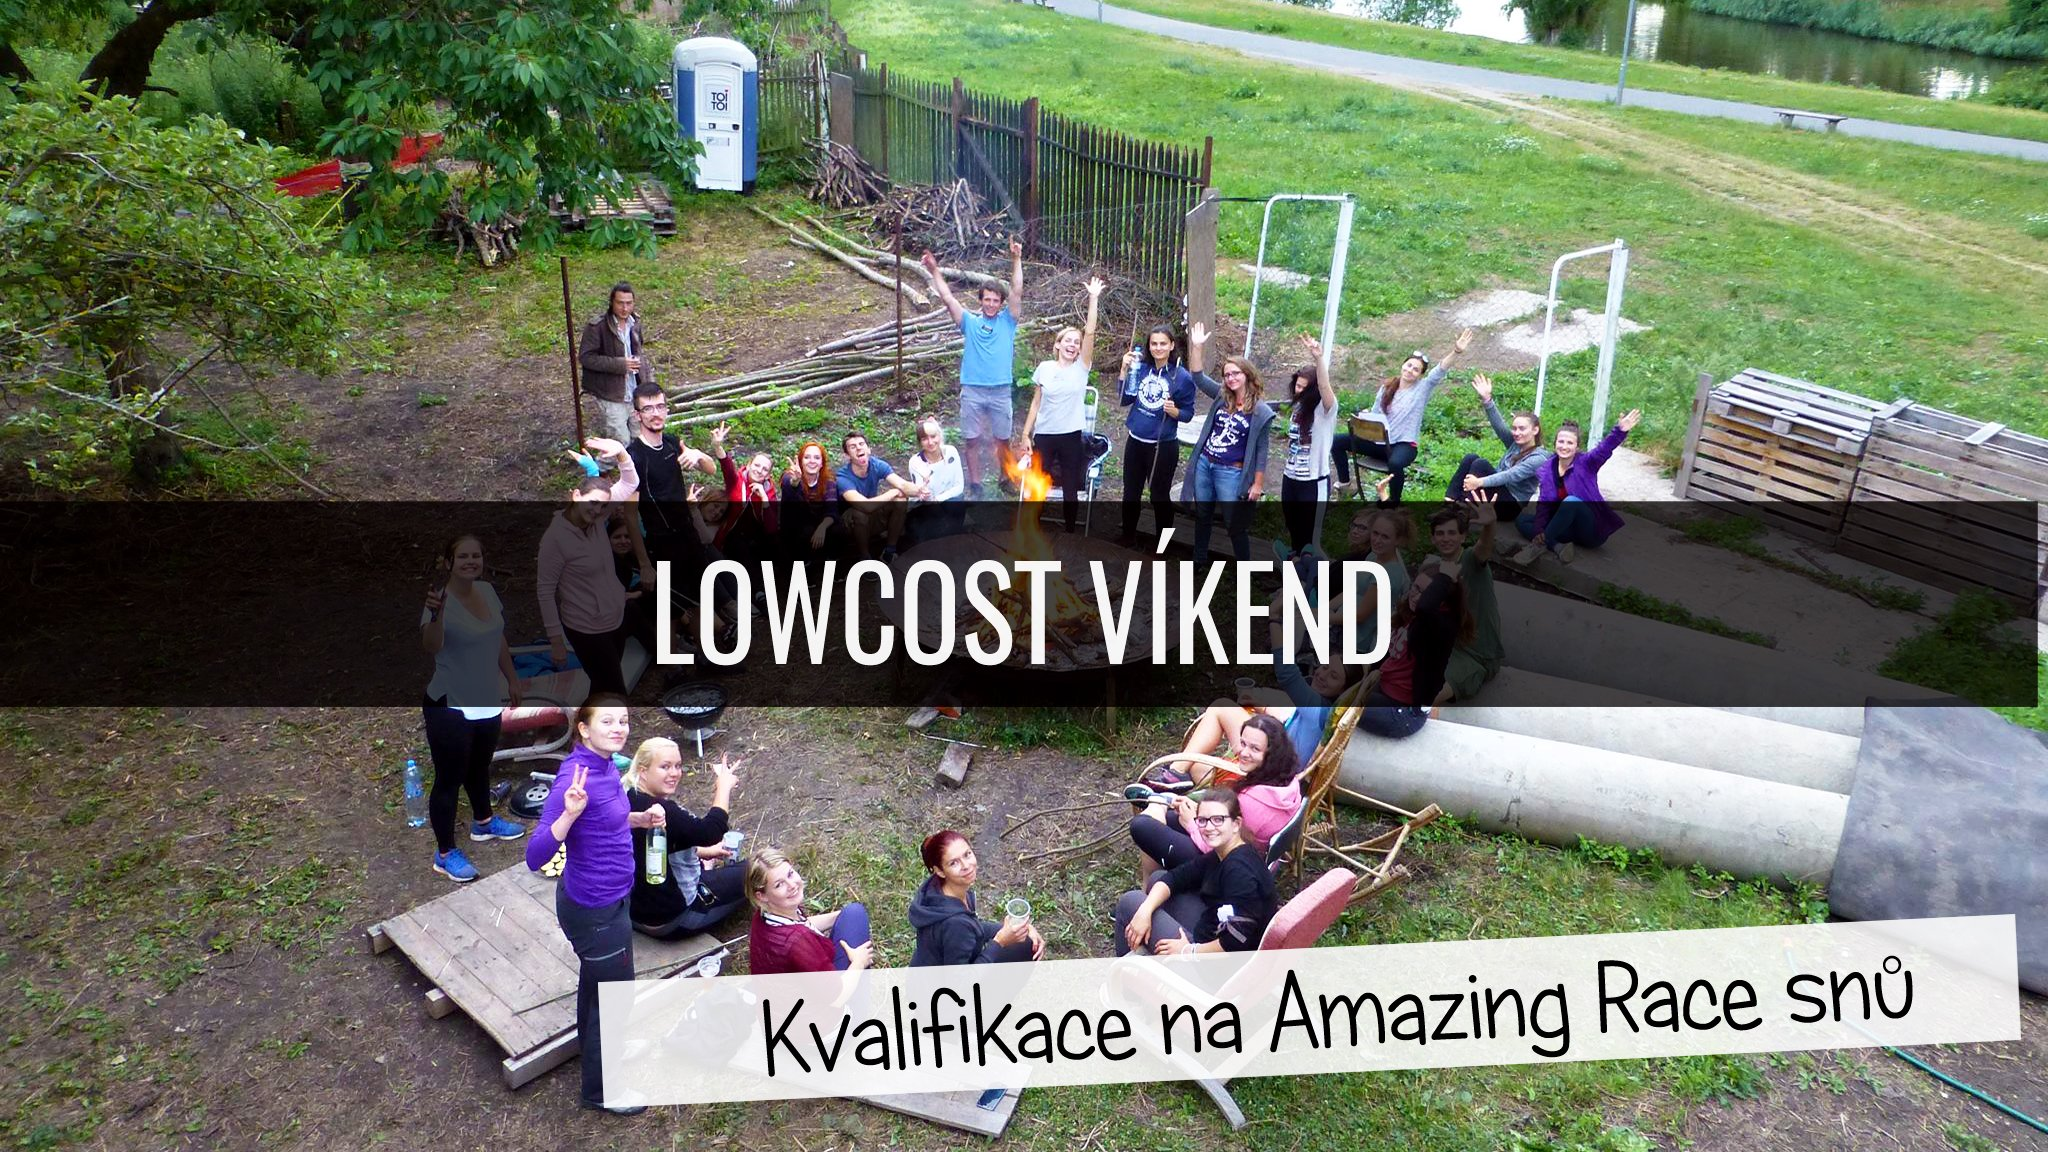 LowCost víkend